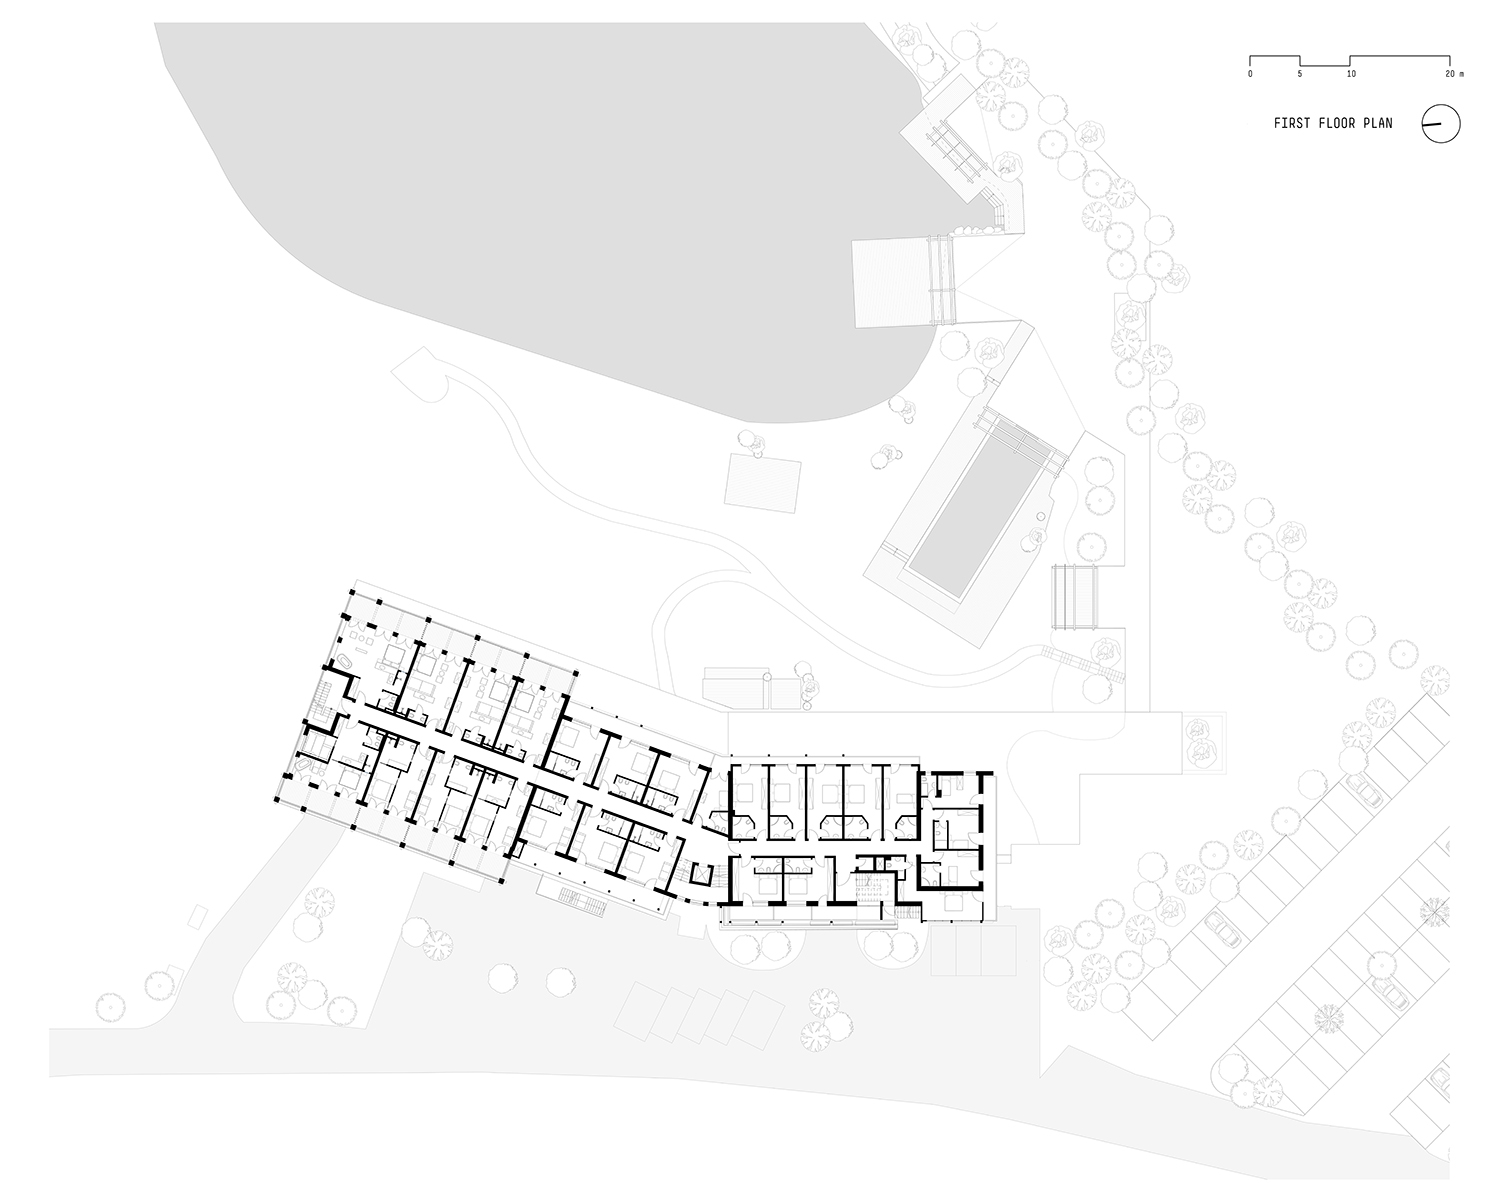 First floor plan noa* network of architecture}